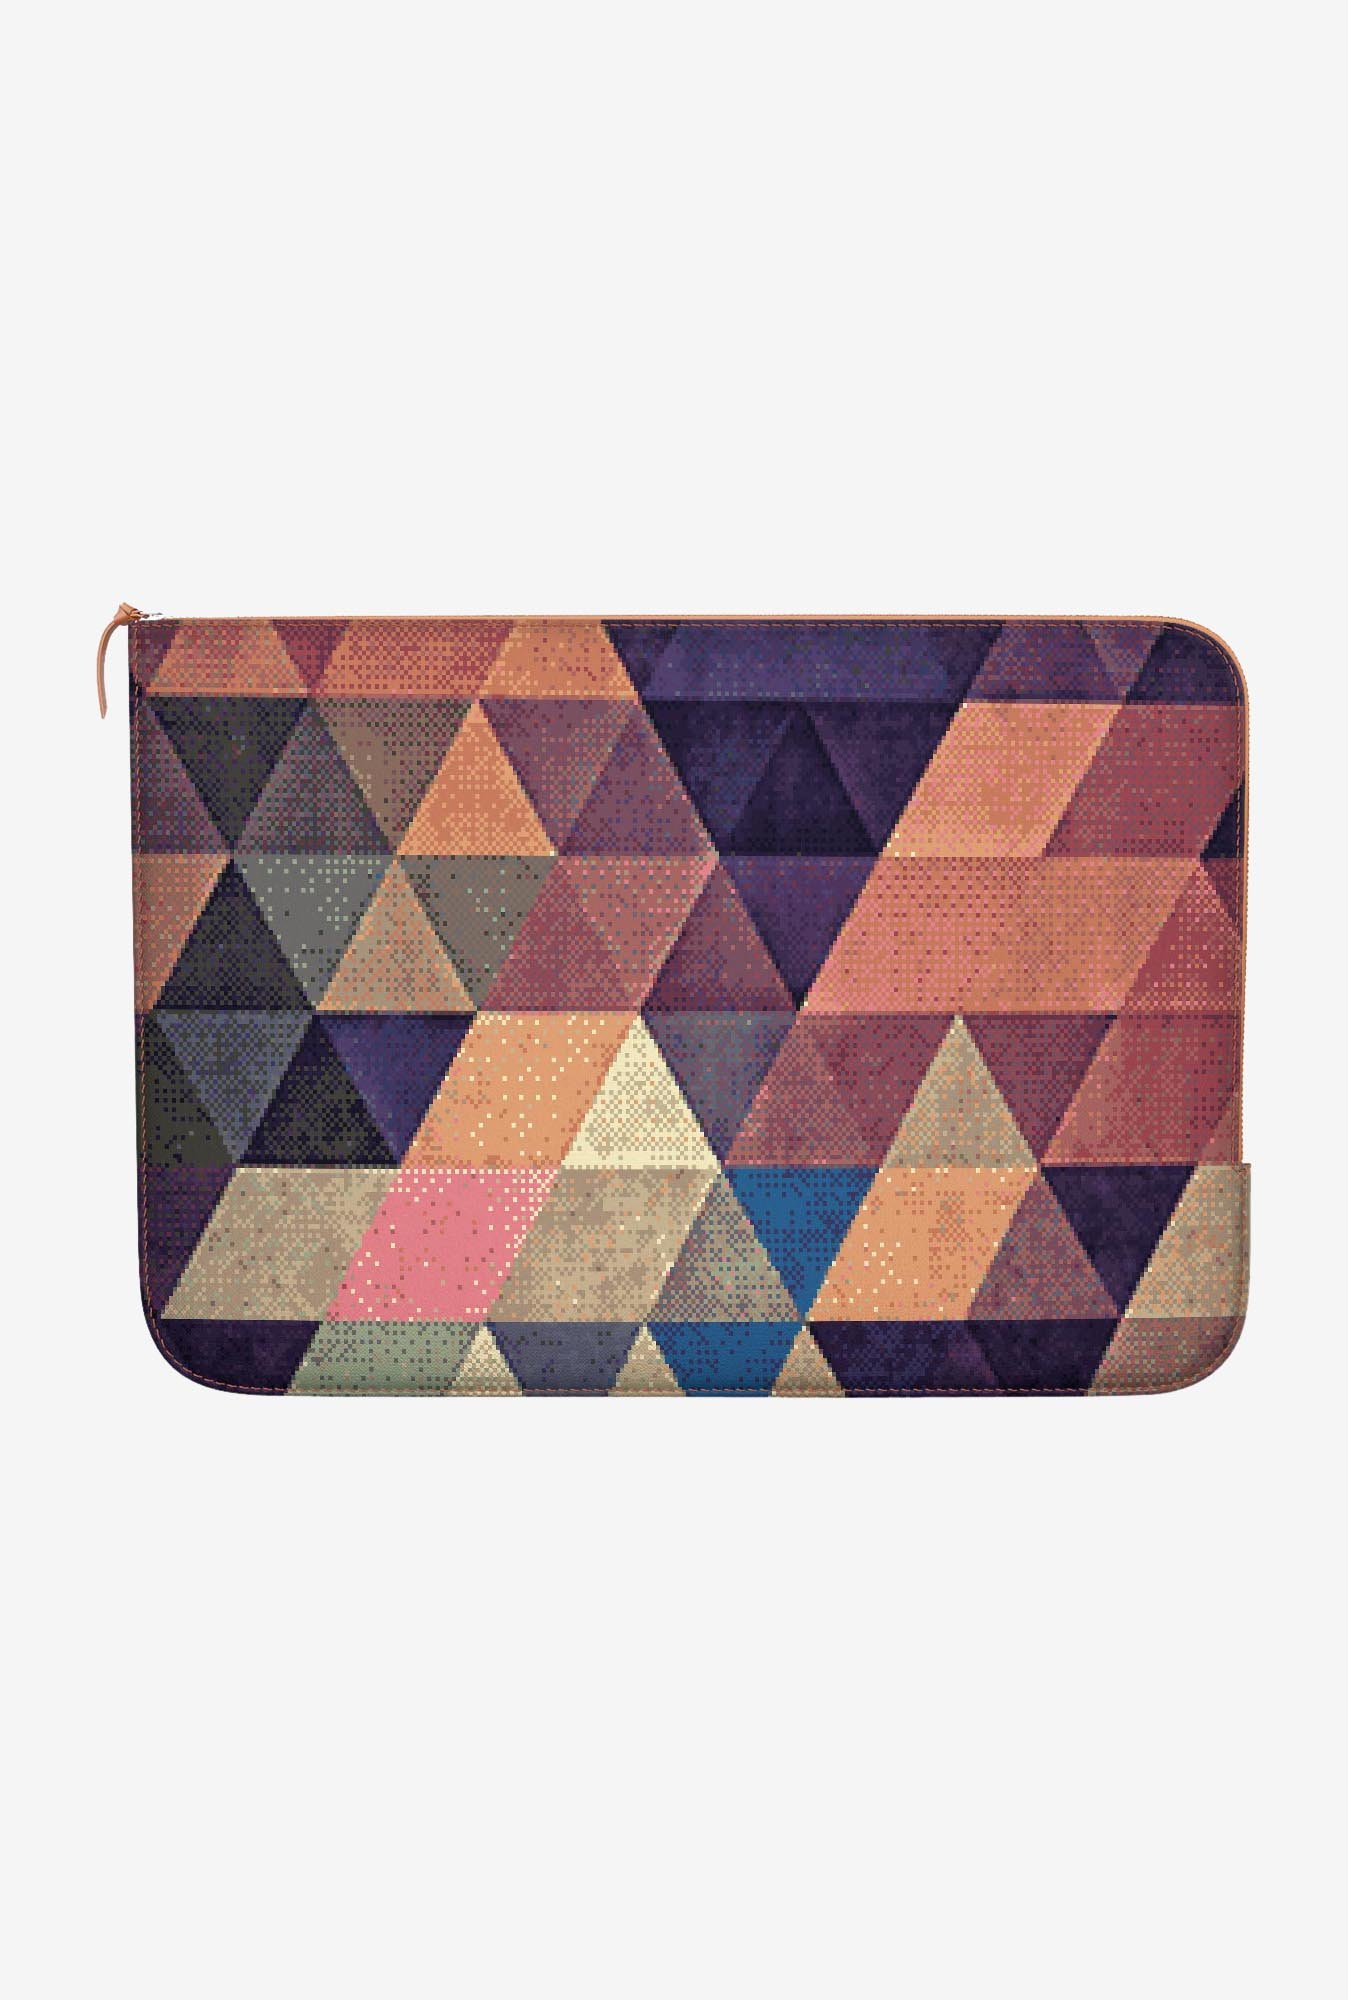 "DailyObjects Fydyxy Pyxyl Macbook Air 13"" Zippered Sleeve"